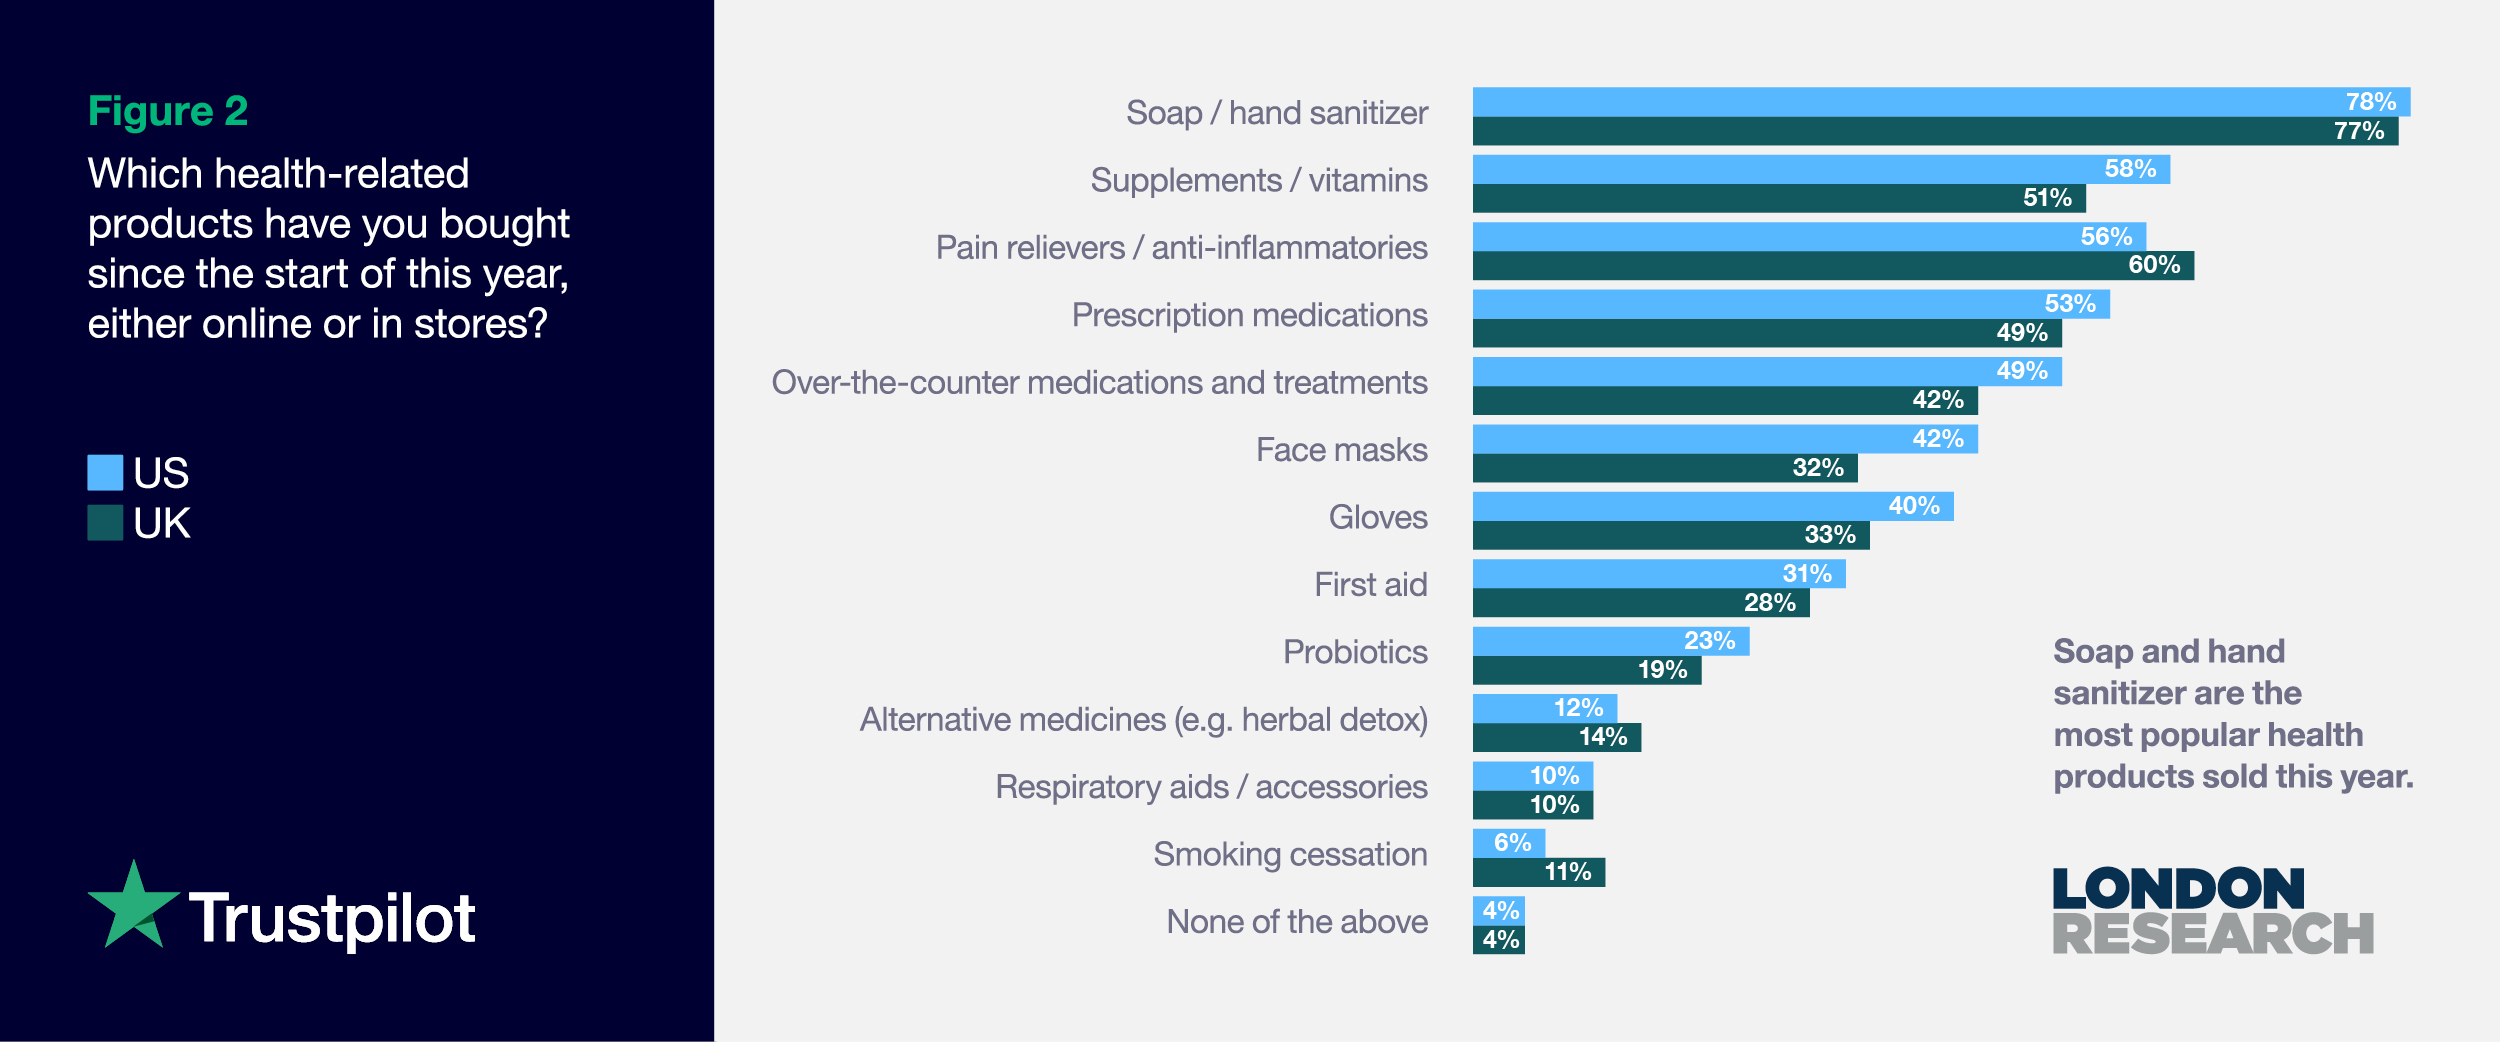 Figure 2: Which health-related products have you bought since the start of this year?